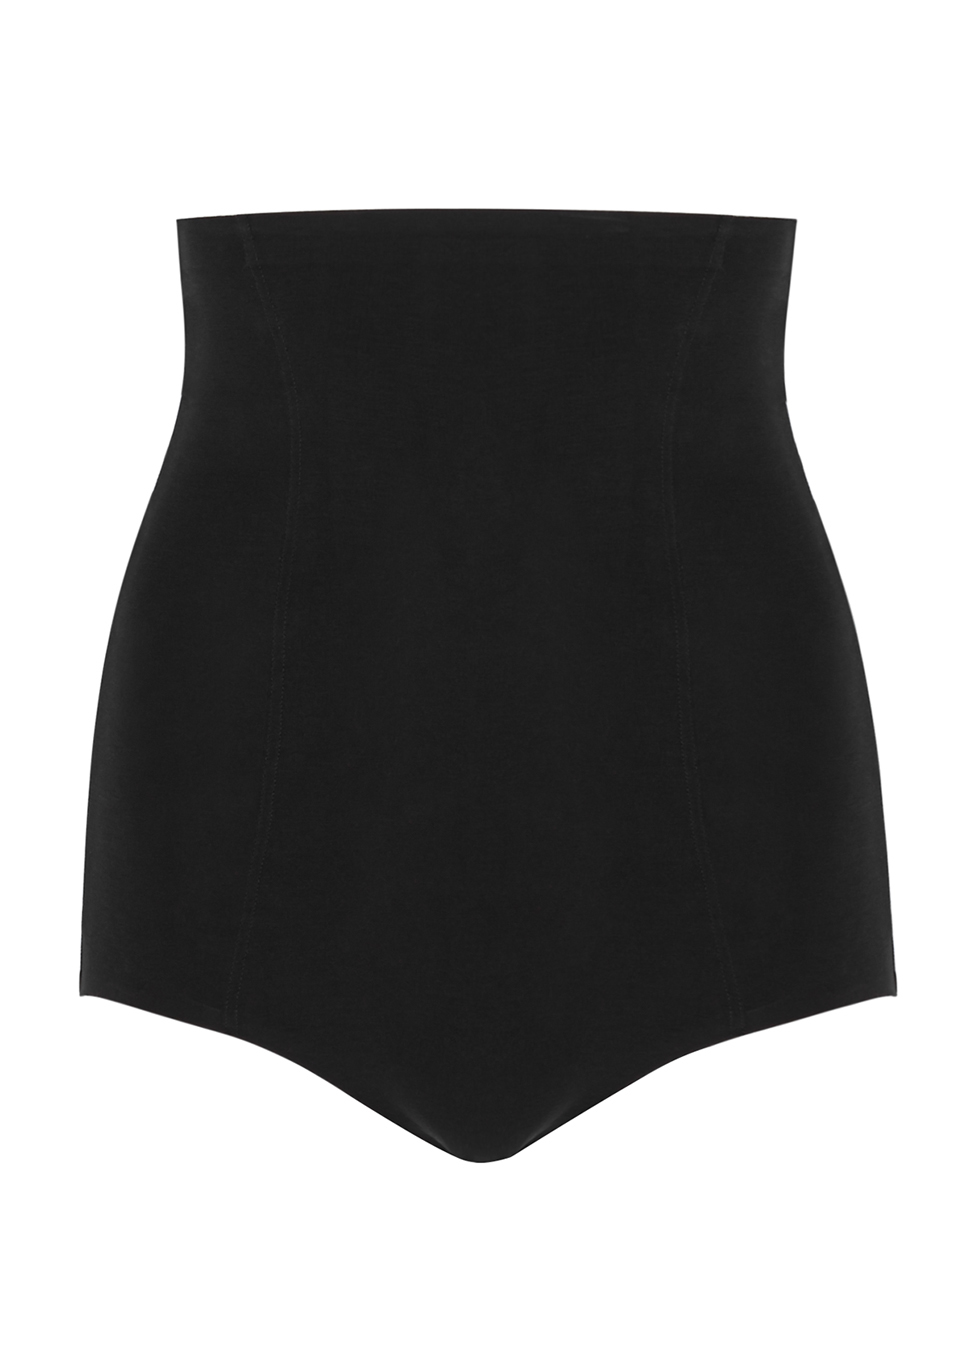 Beyond Naked black shaping briefs - Wacoal